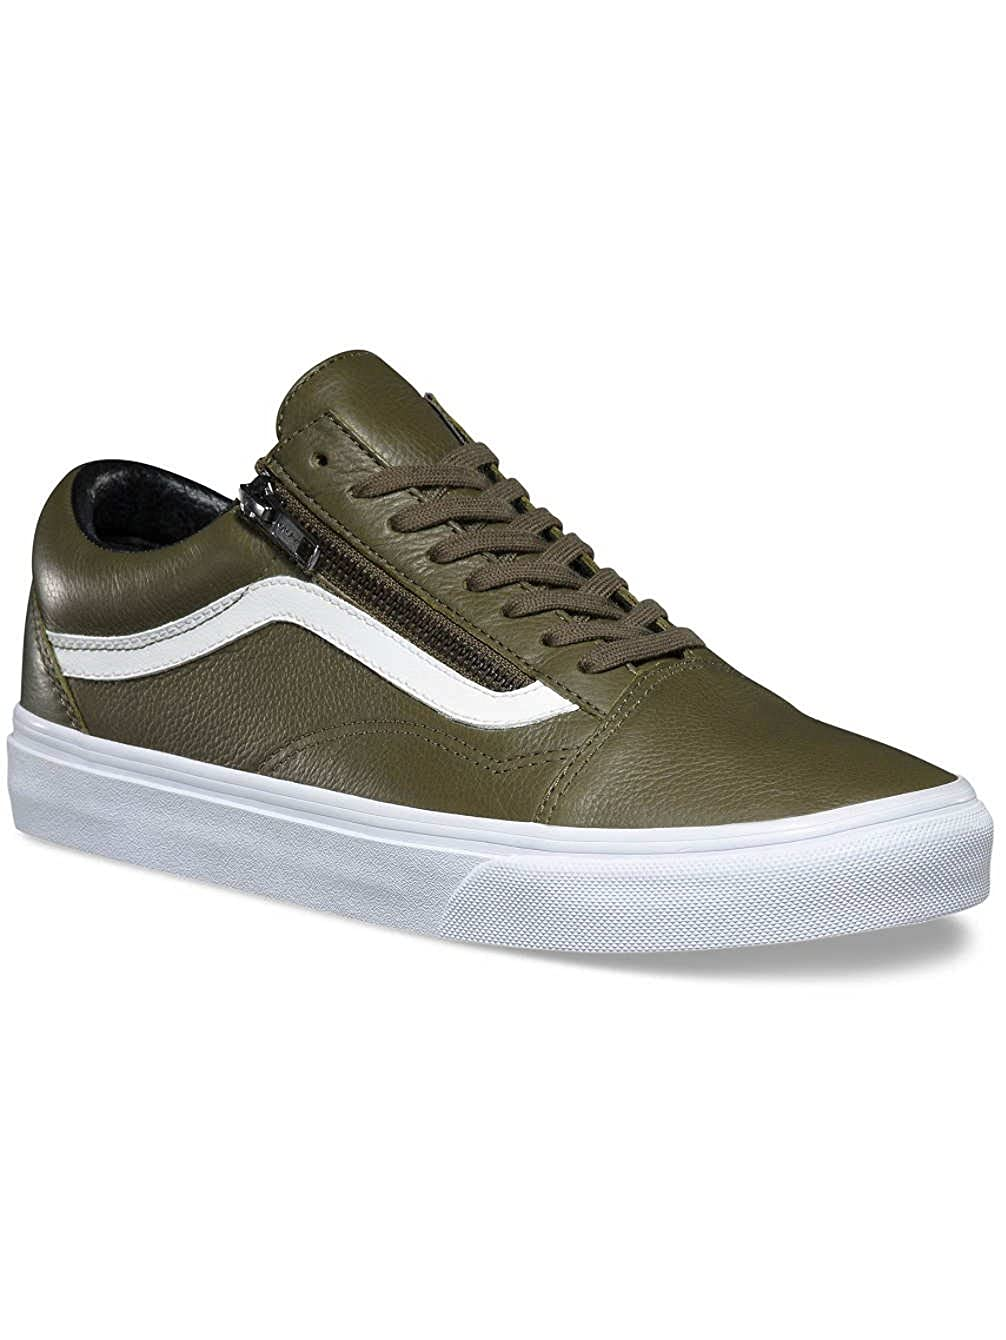 6a5e0c54a86 Amazon.com: Vans Old Skool Zip: Shoes